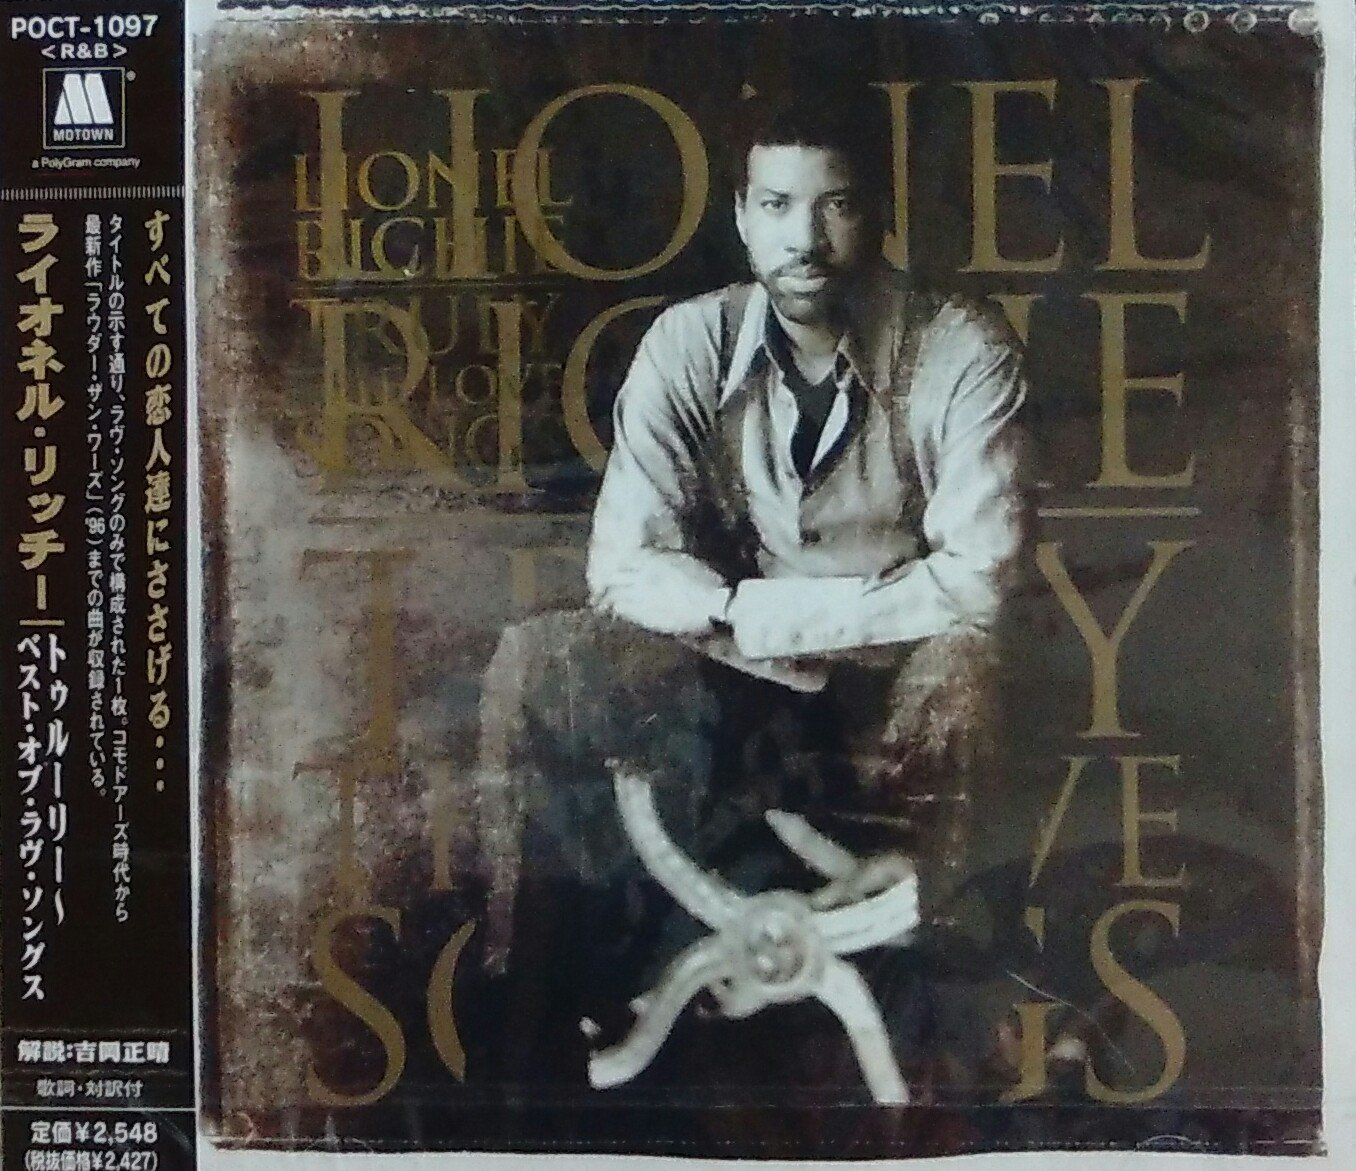 Lionel Richie Truly - The Love Songs